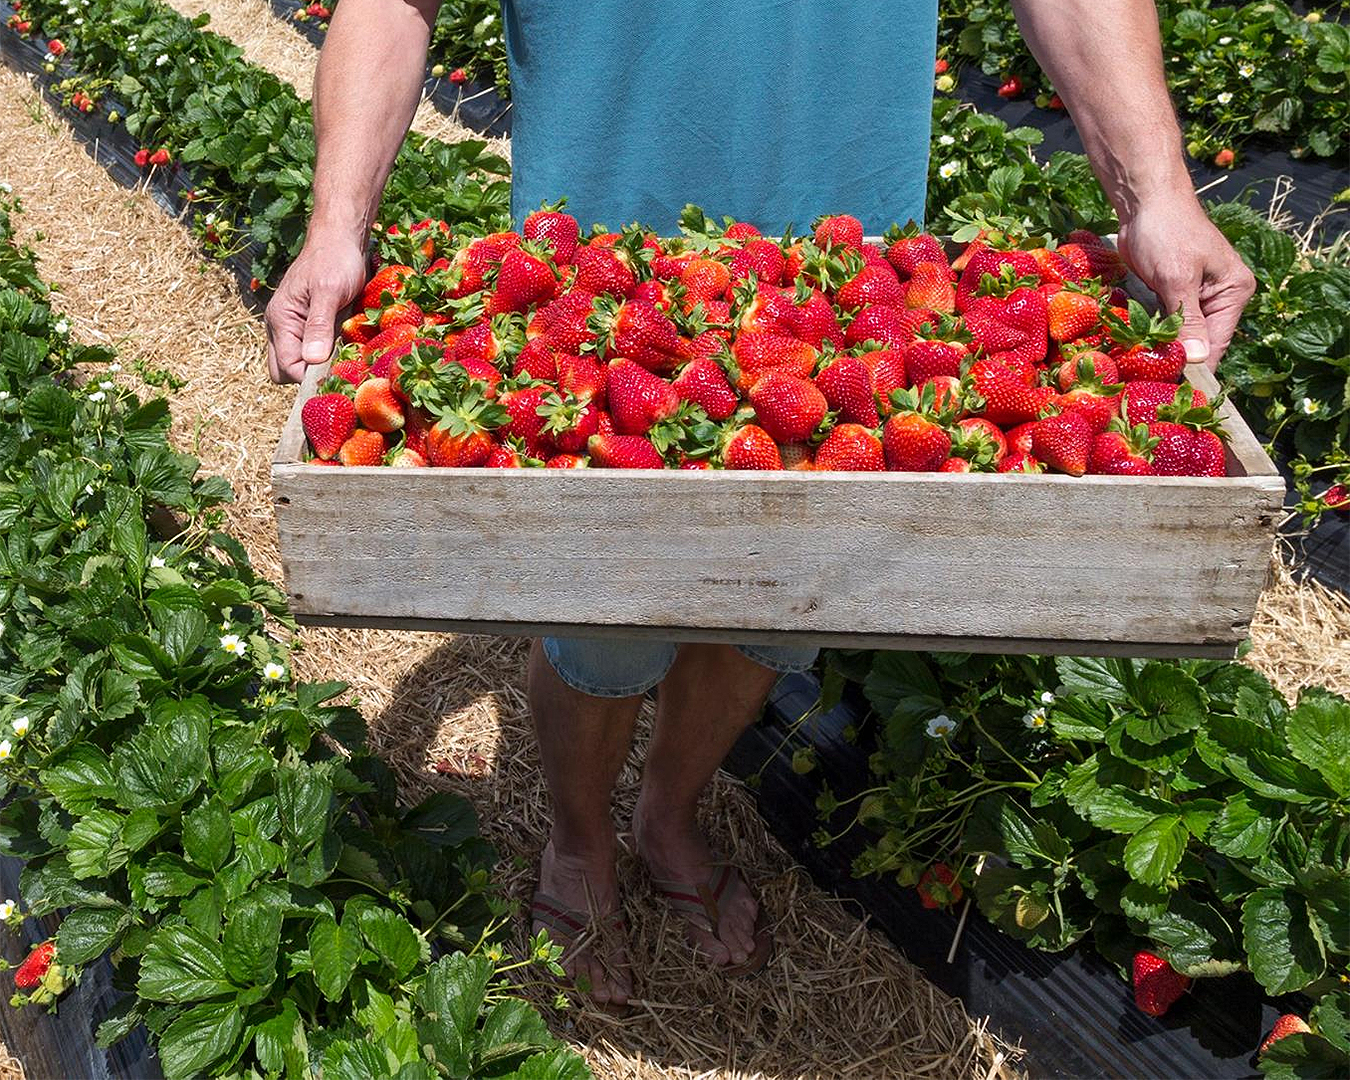 A man holds a heaping punnet of Sweet Red Strawberries